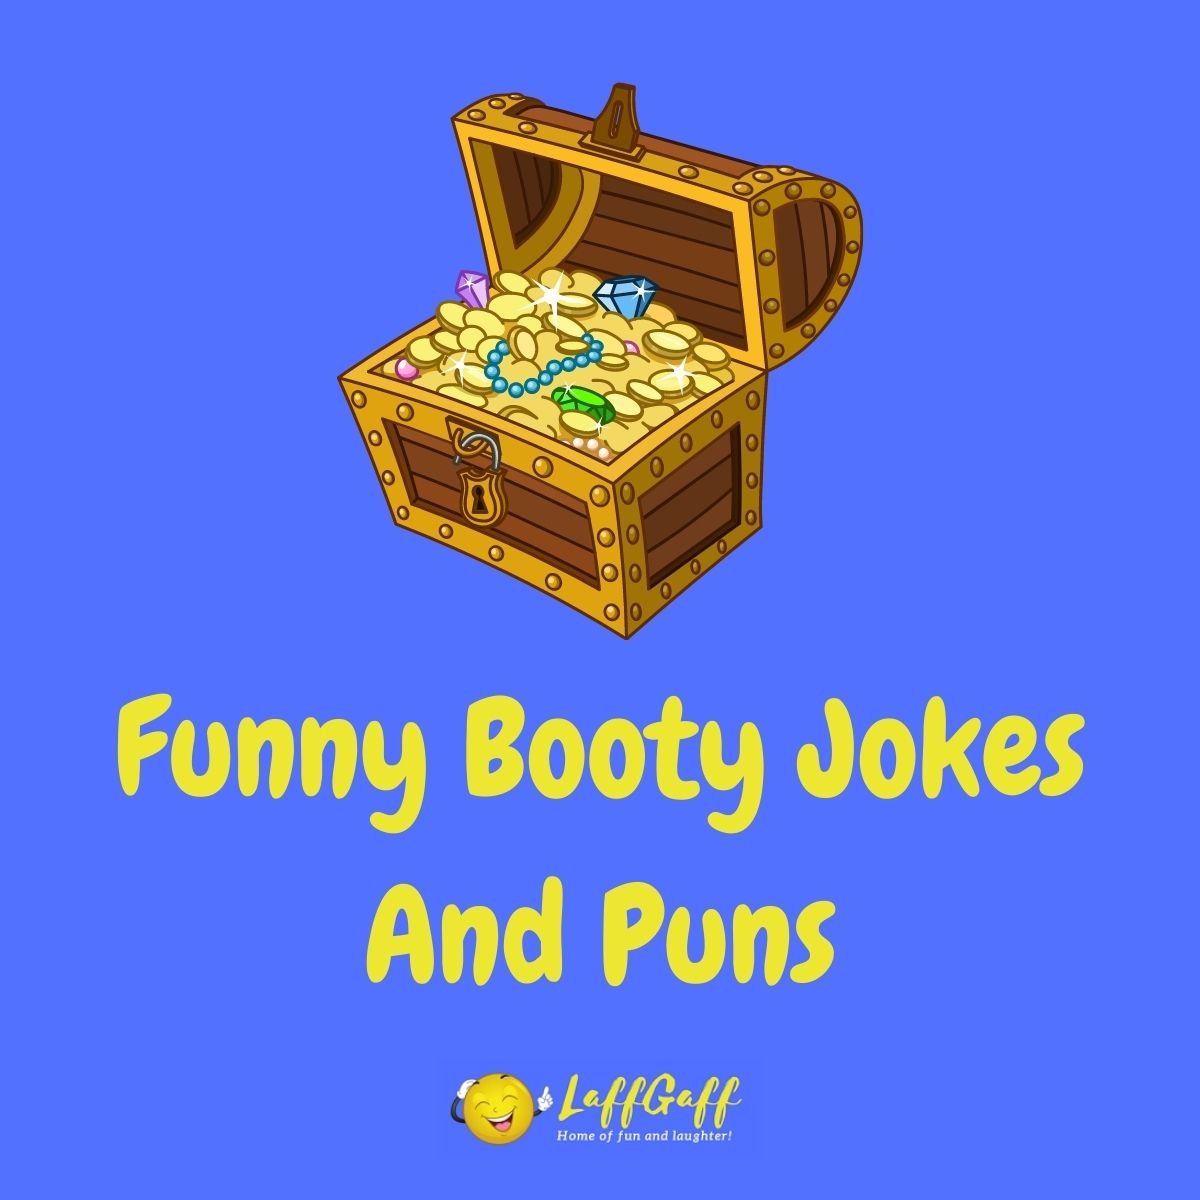 Featured image for a page of funny booty jokes and puns.